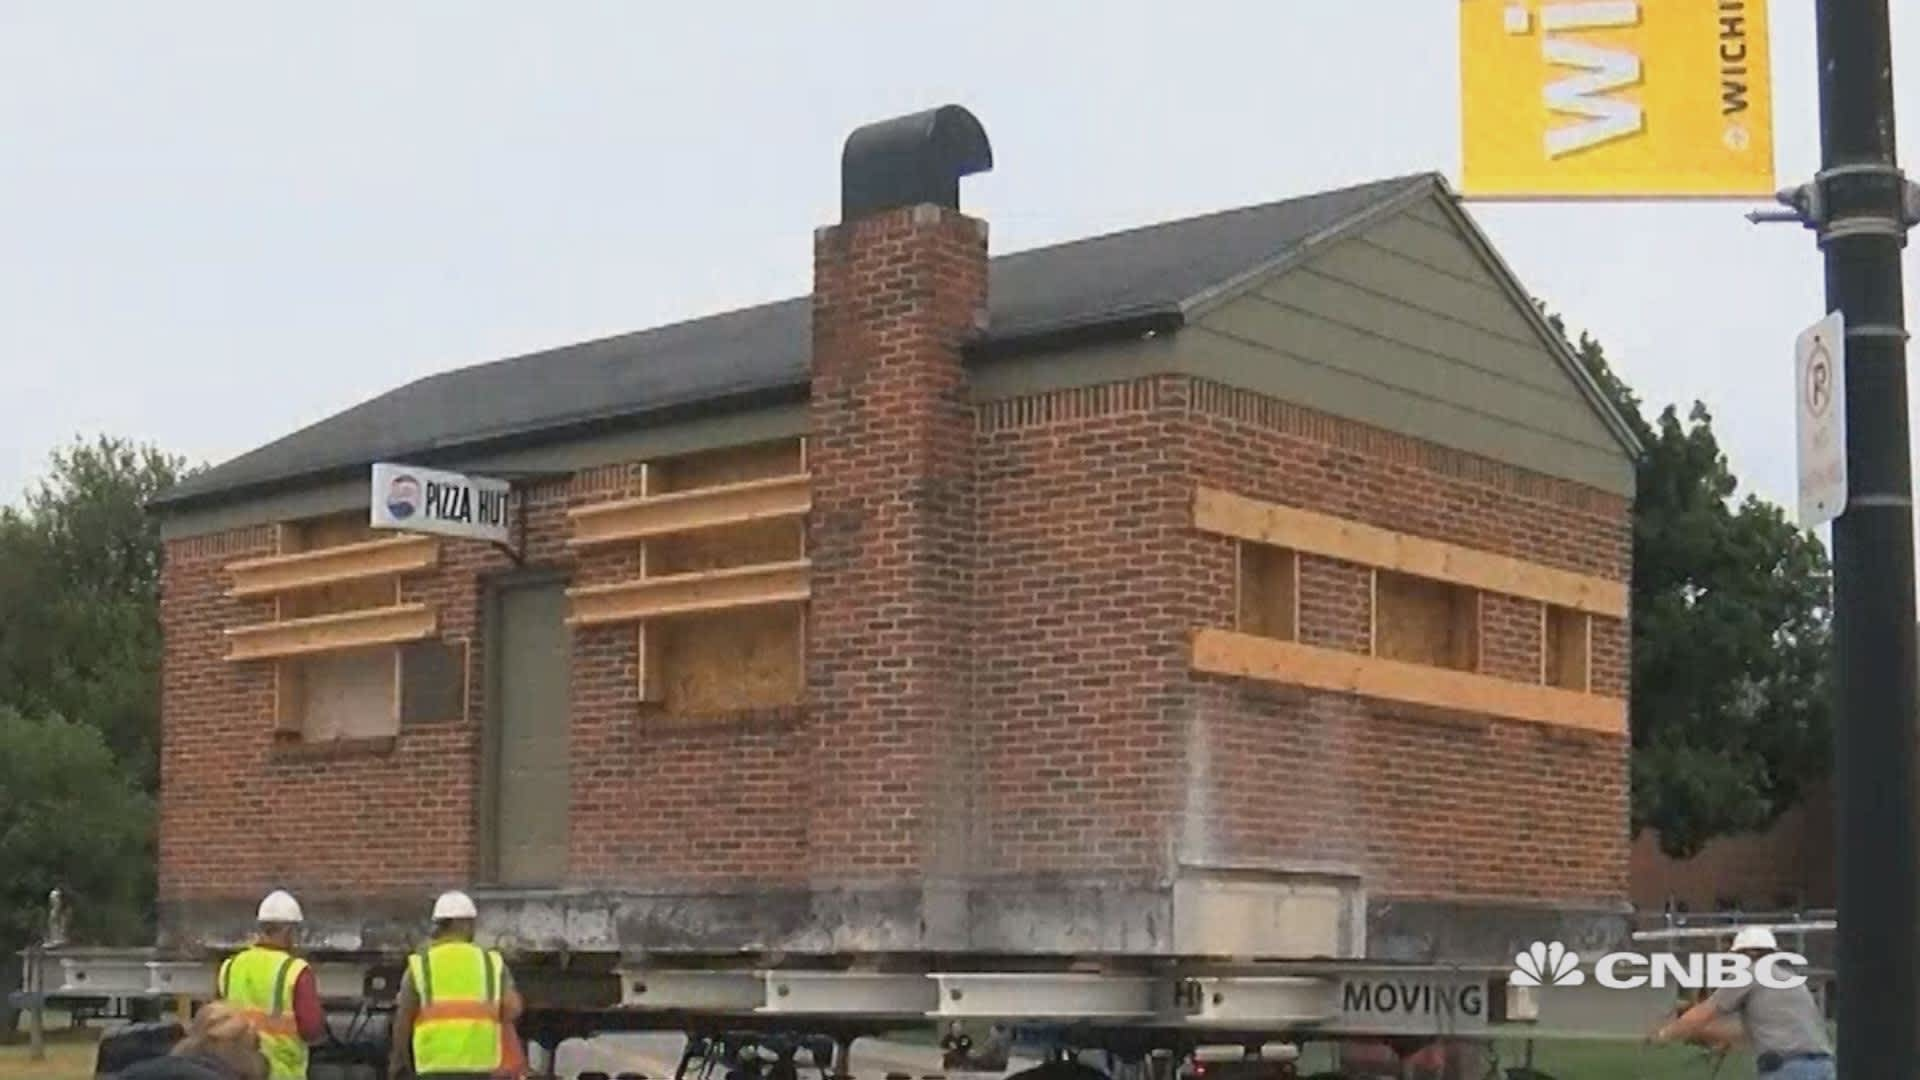 The Original Pizza Hut Building Is Moving